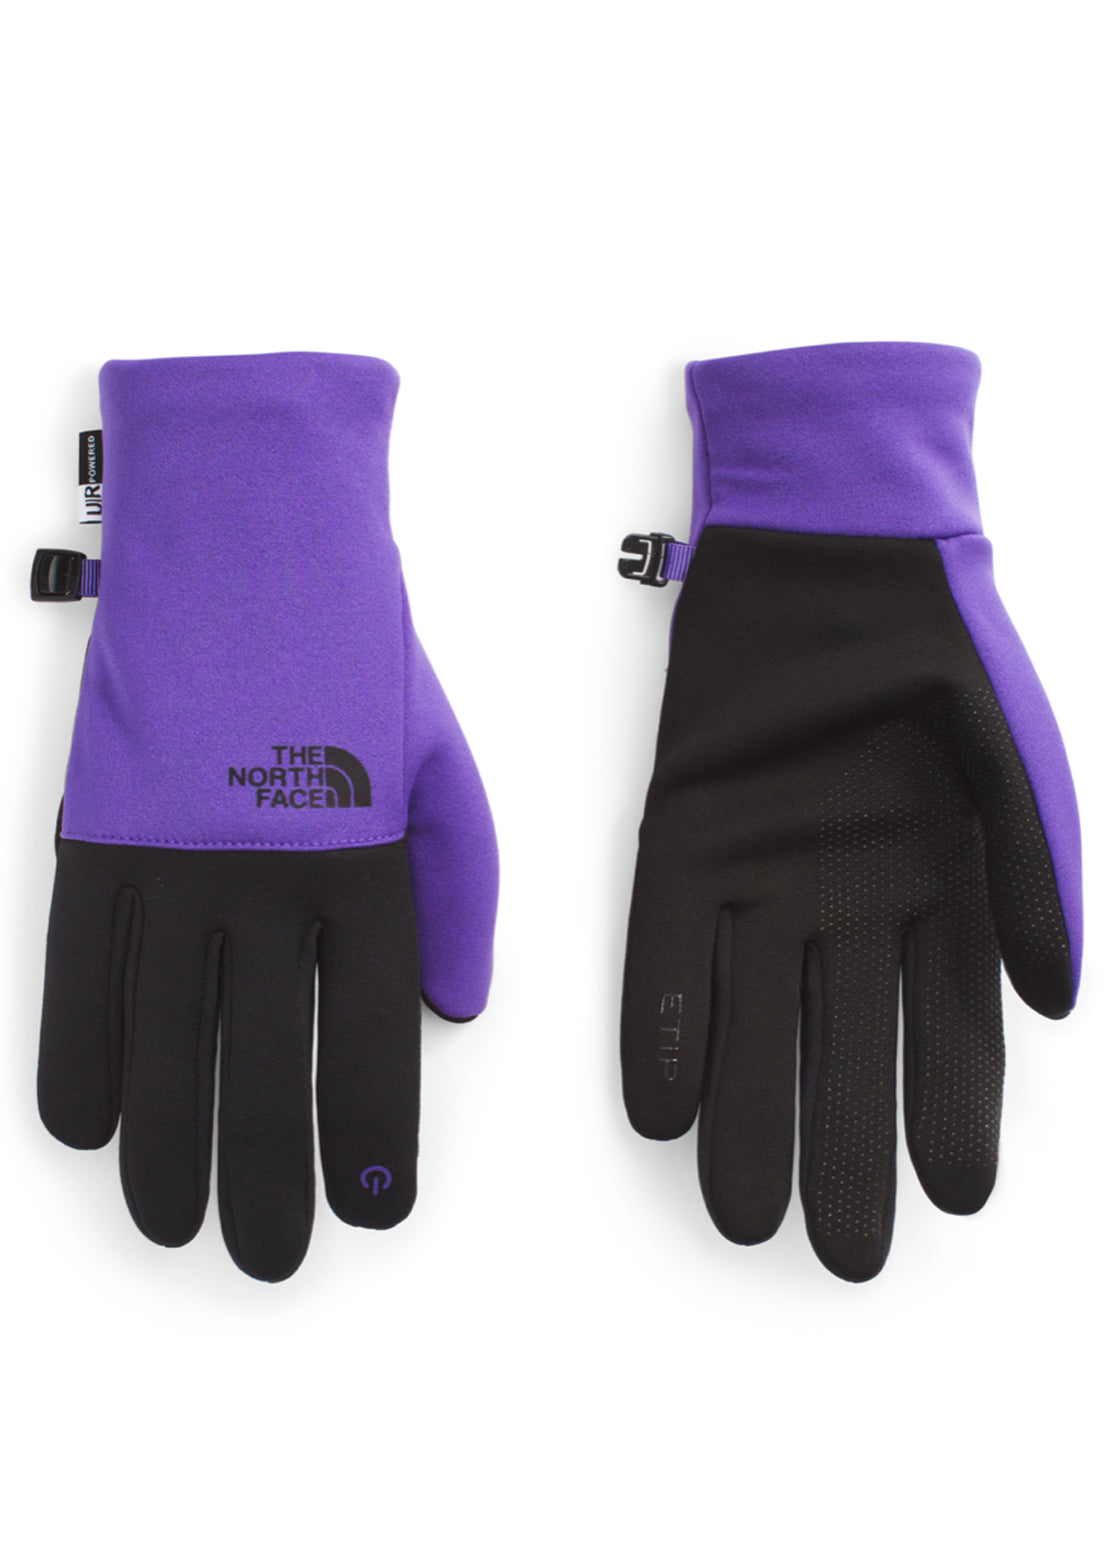 The North Face Men's Etip Recycled Gloves Peak Purple/TNF Black